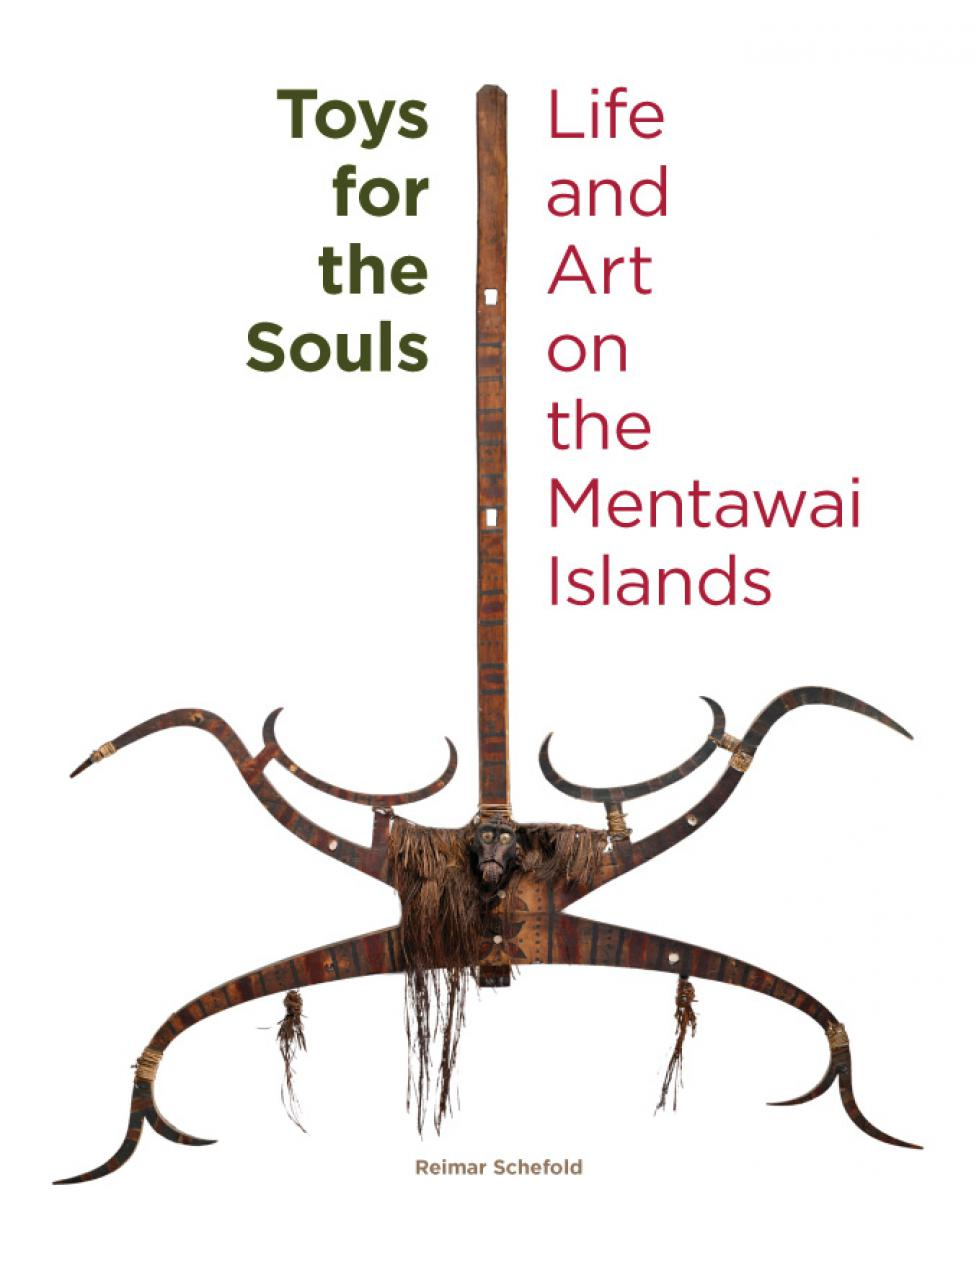 Toys for the Souls Life and Art on the Mentawai Islands Dr. Reimar Schefold